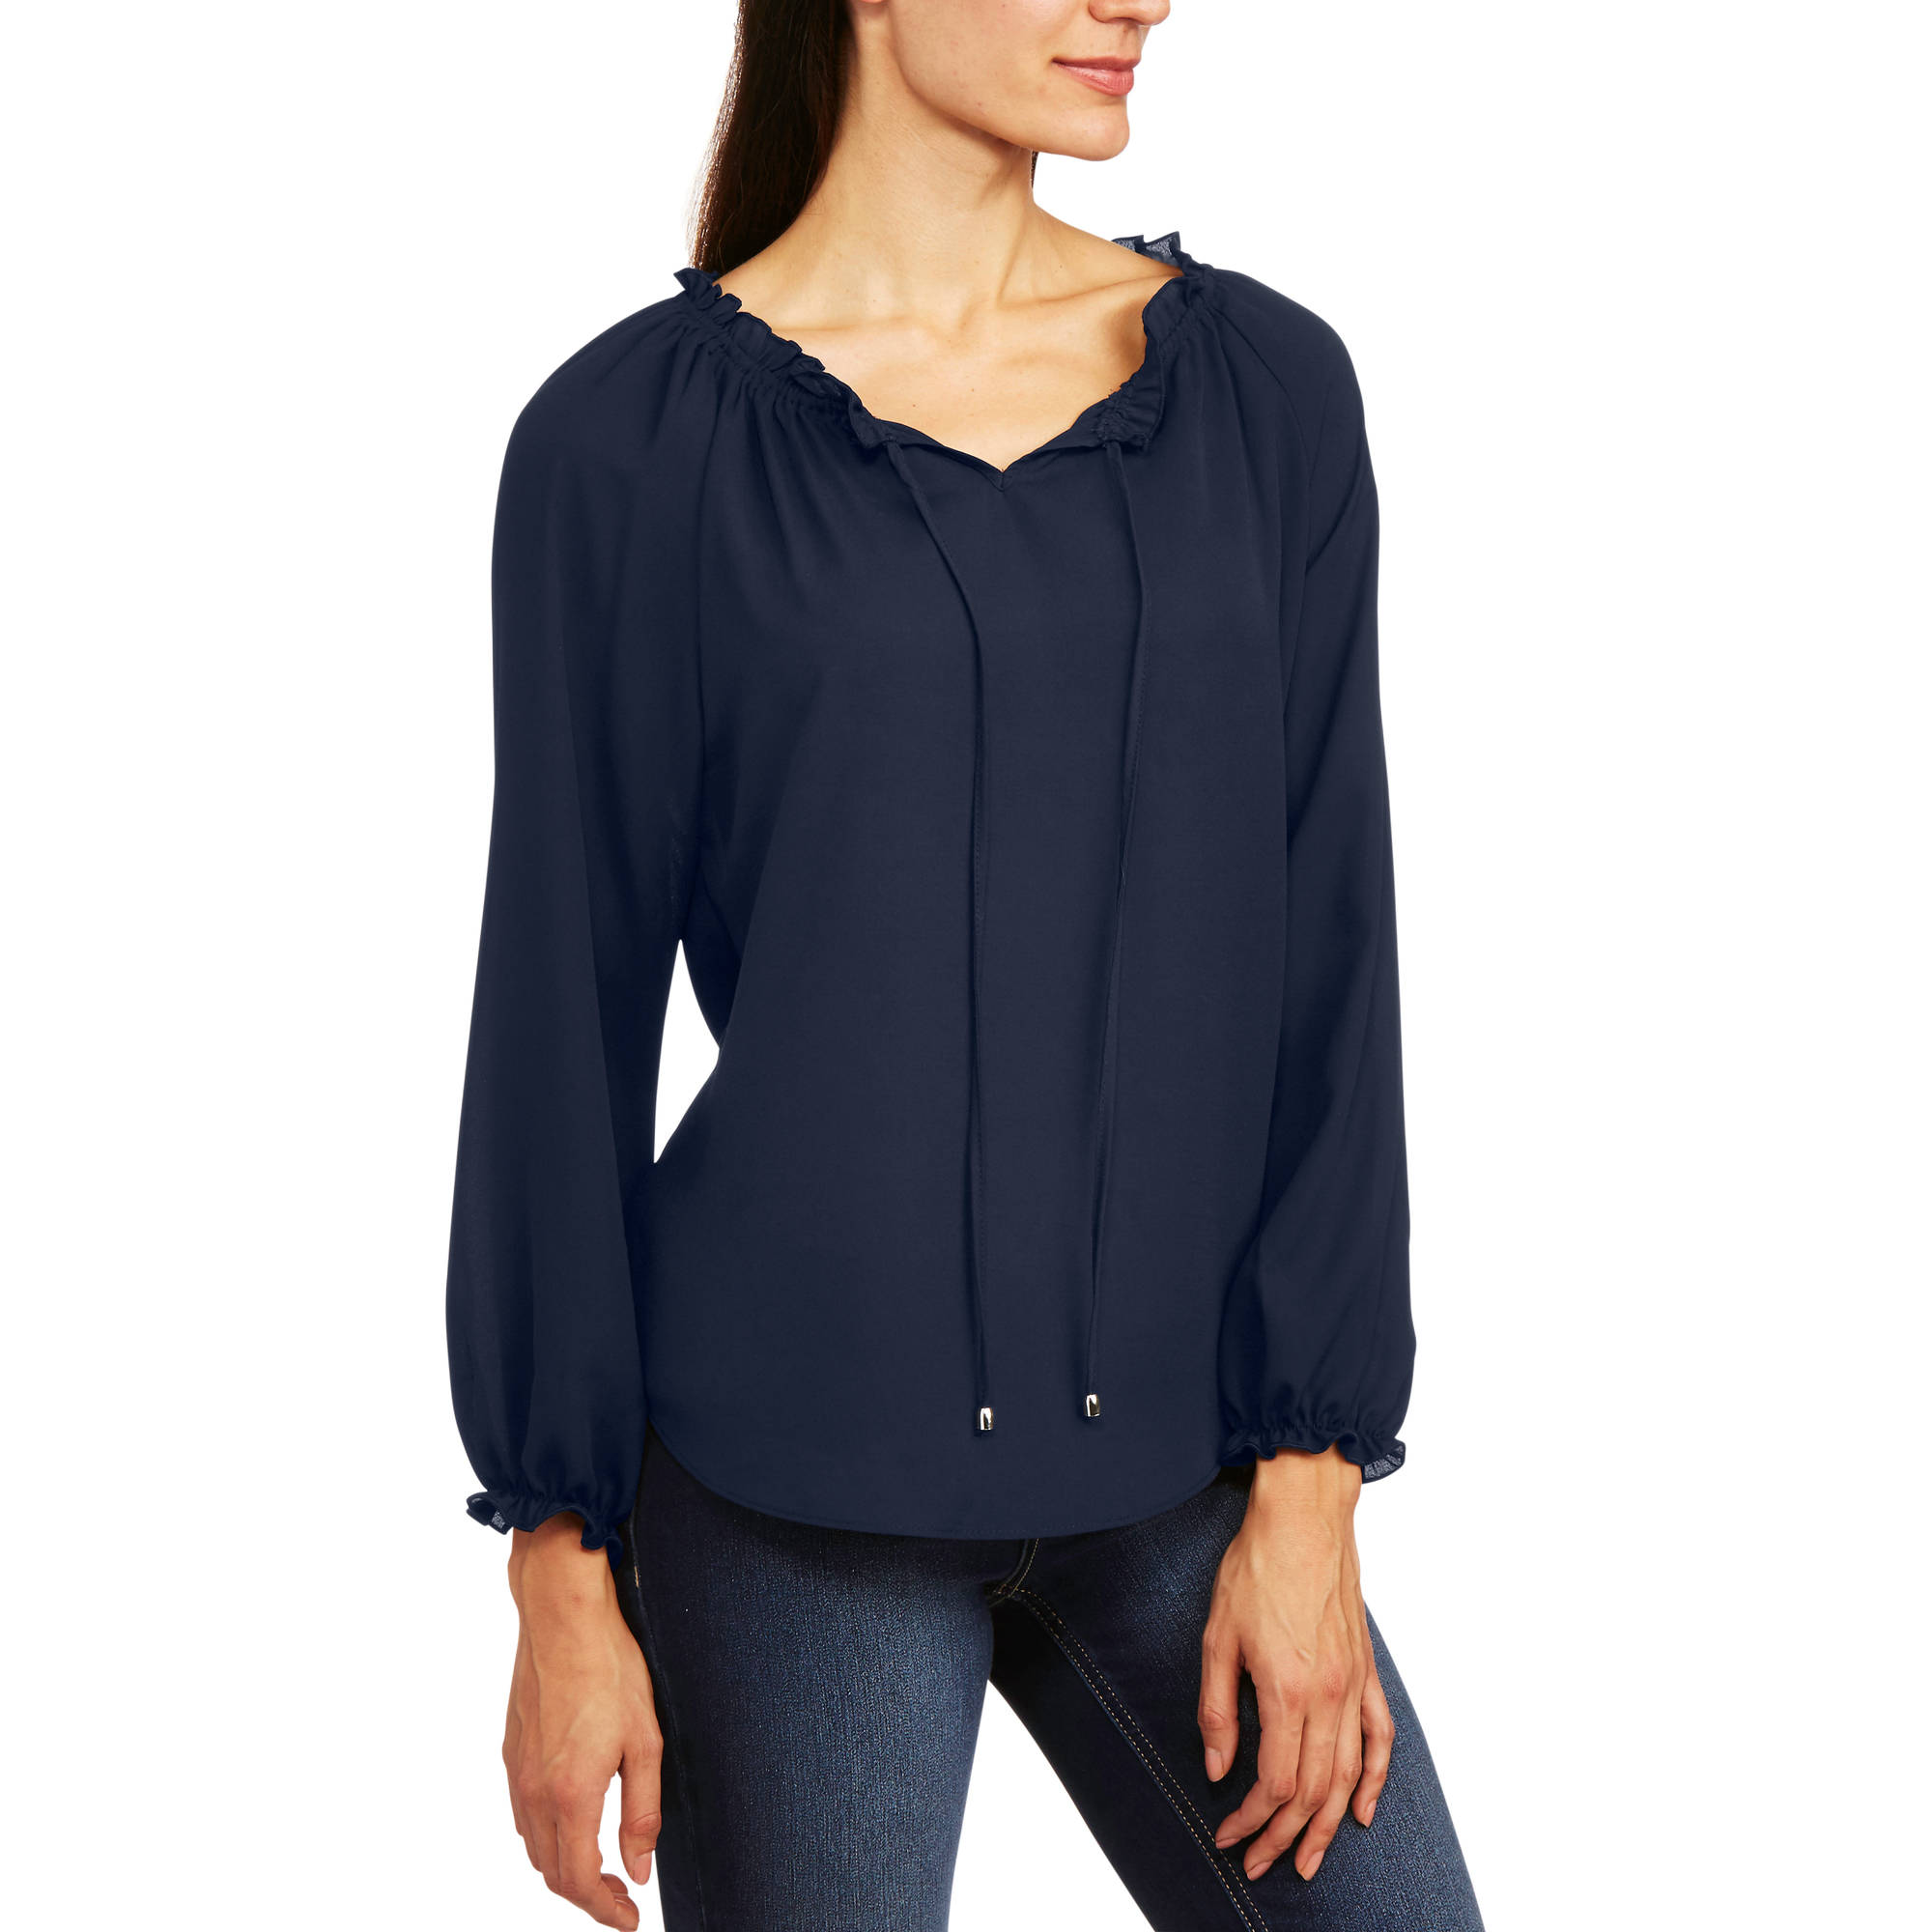 Glamour & Co. Women's Long Sleeve Peasant Top